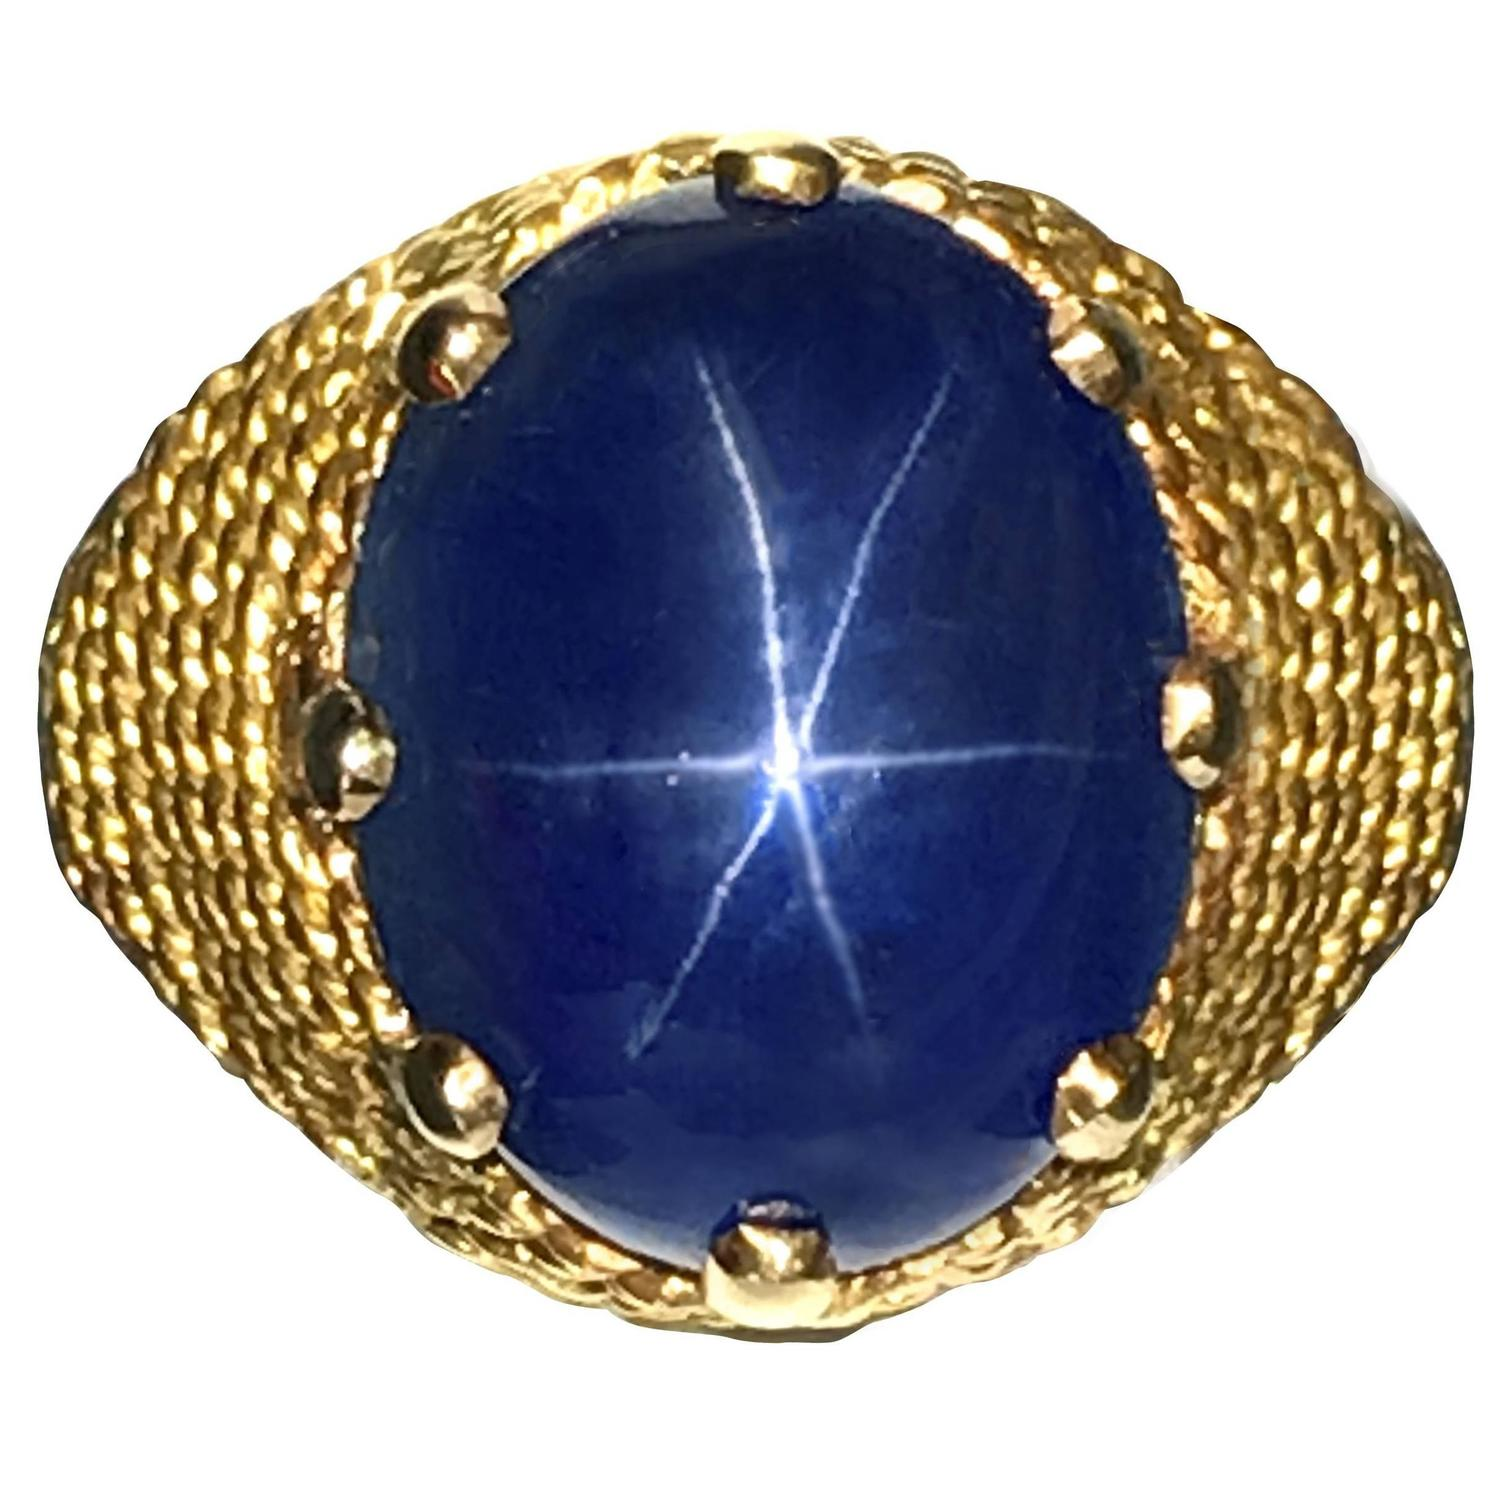 rare untitled kashmir blue sapphire diamonds with